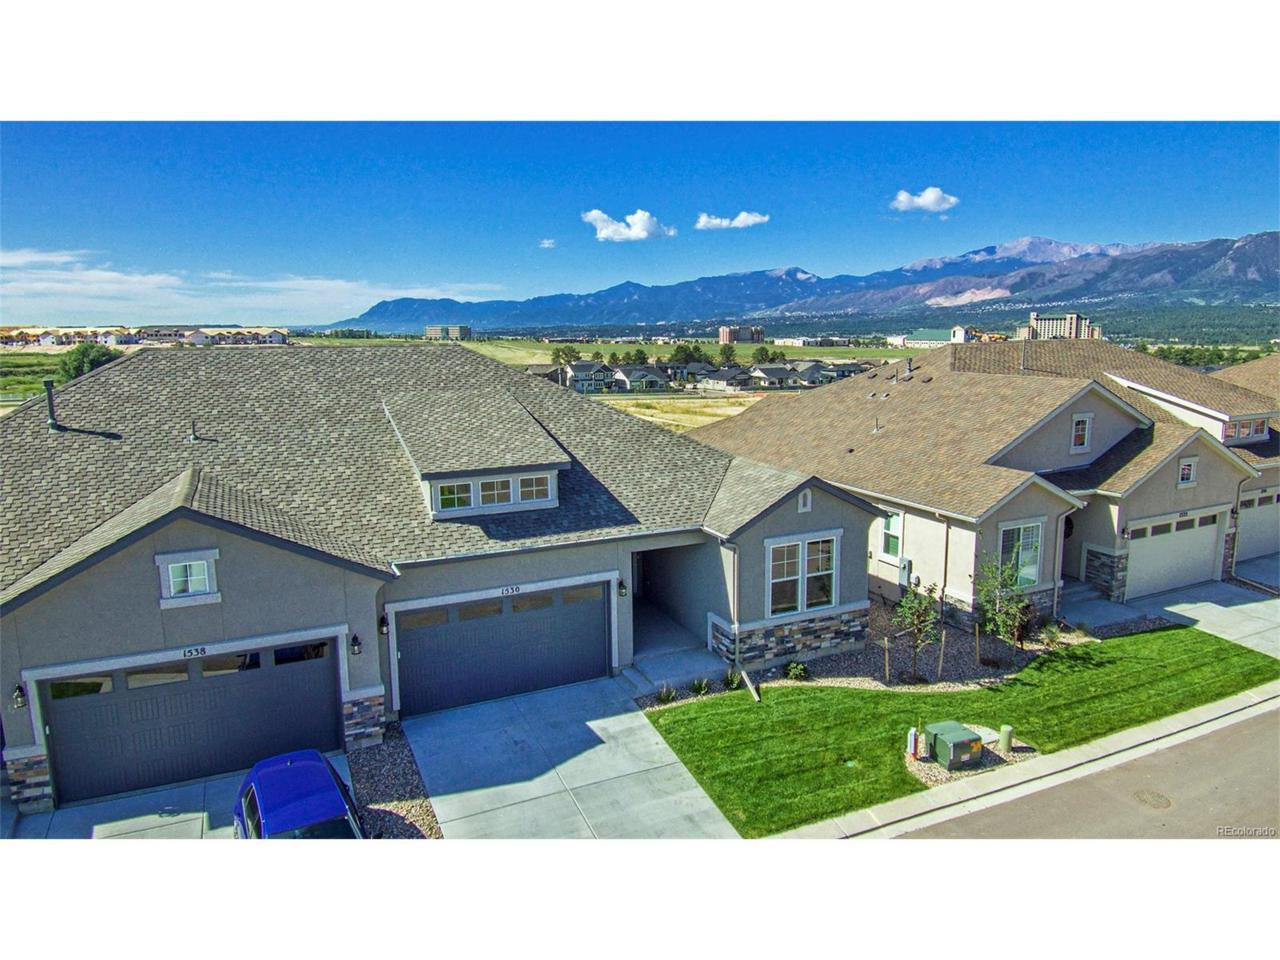 1530 Promontory Bluff View, Colorado Springs, CO 80921 (MLS #6638438) :: 8z Real Estate